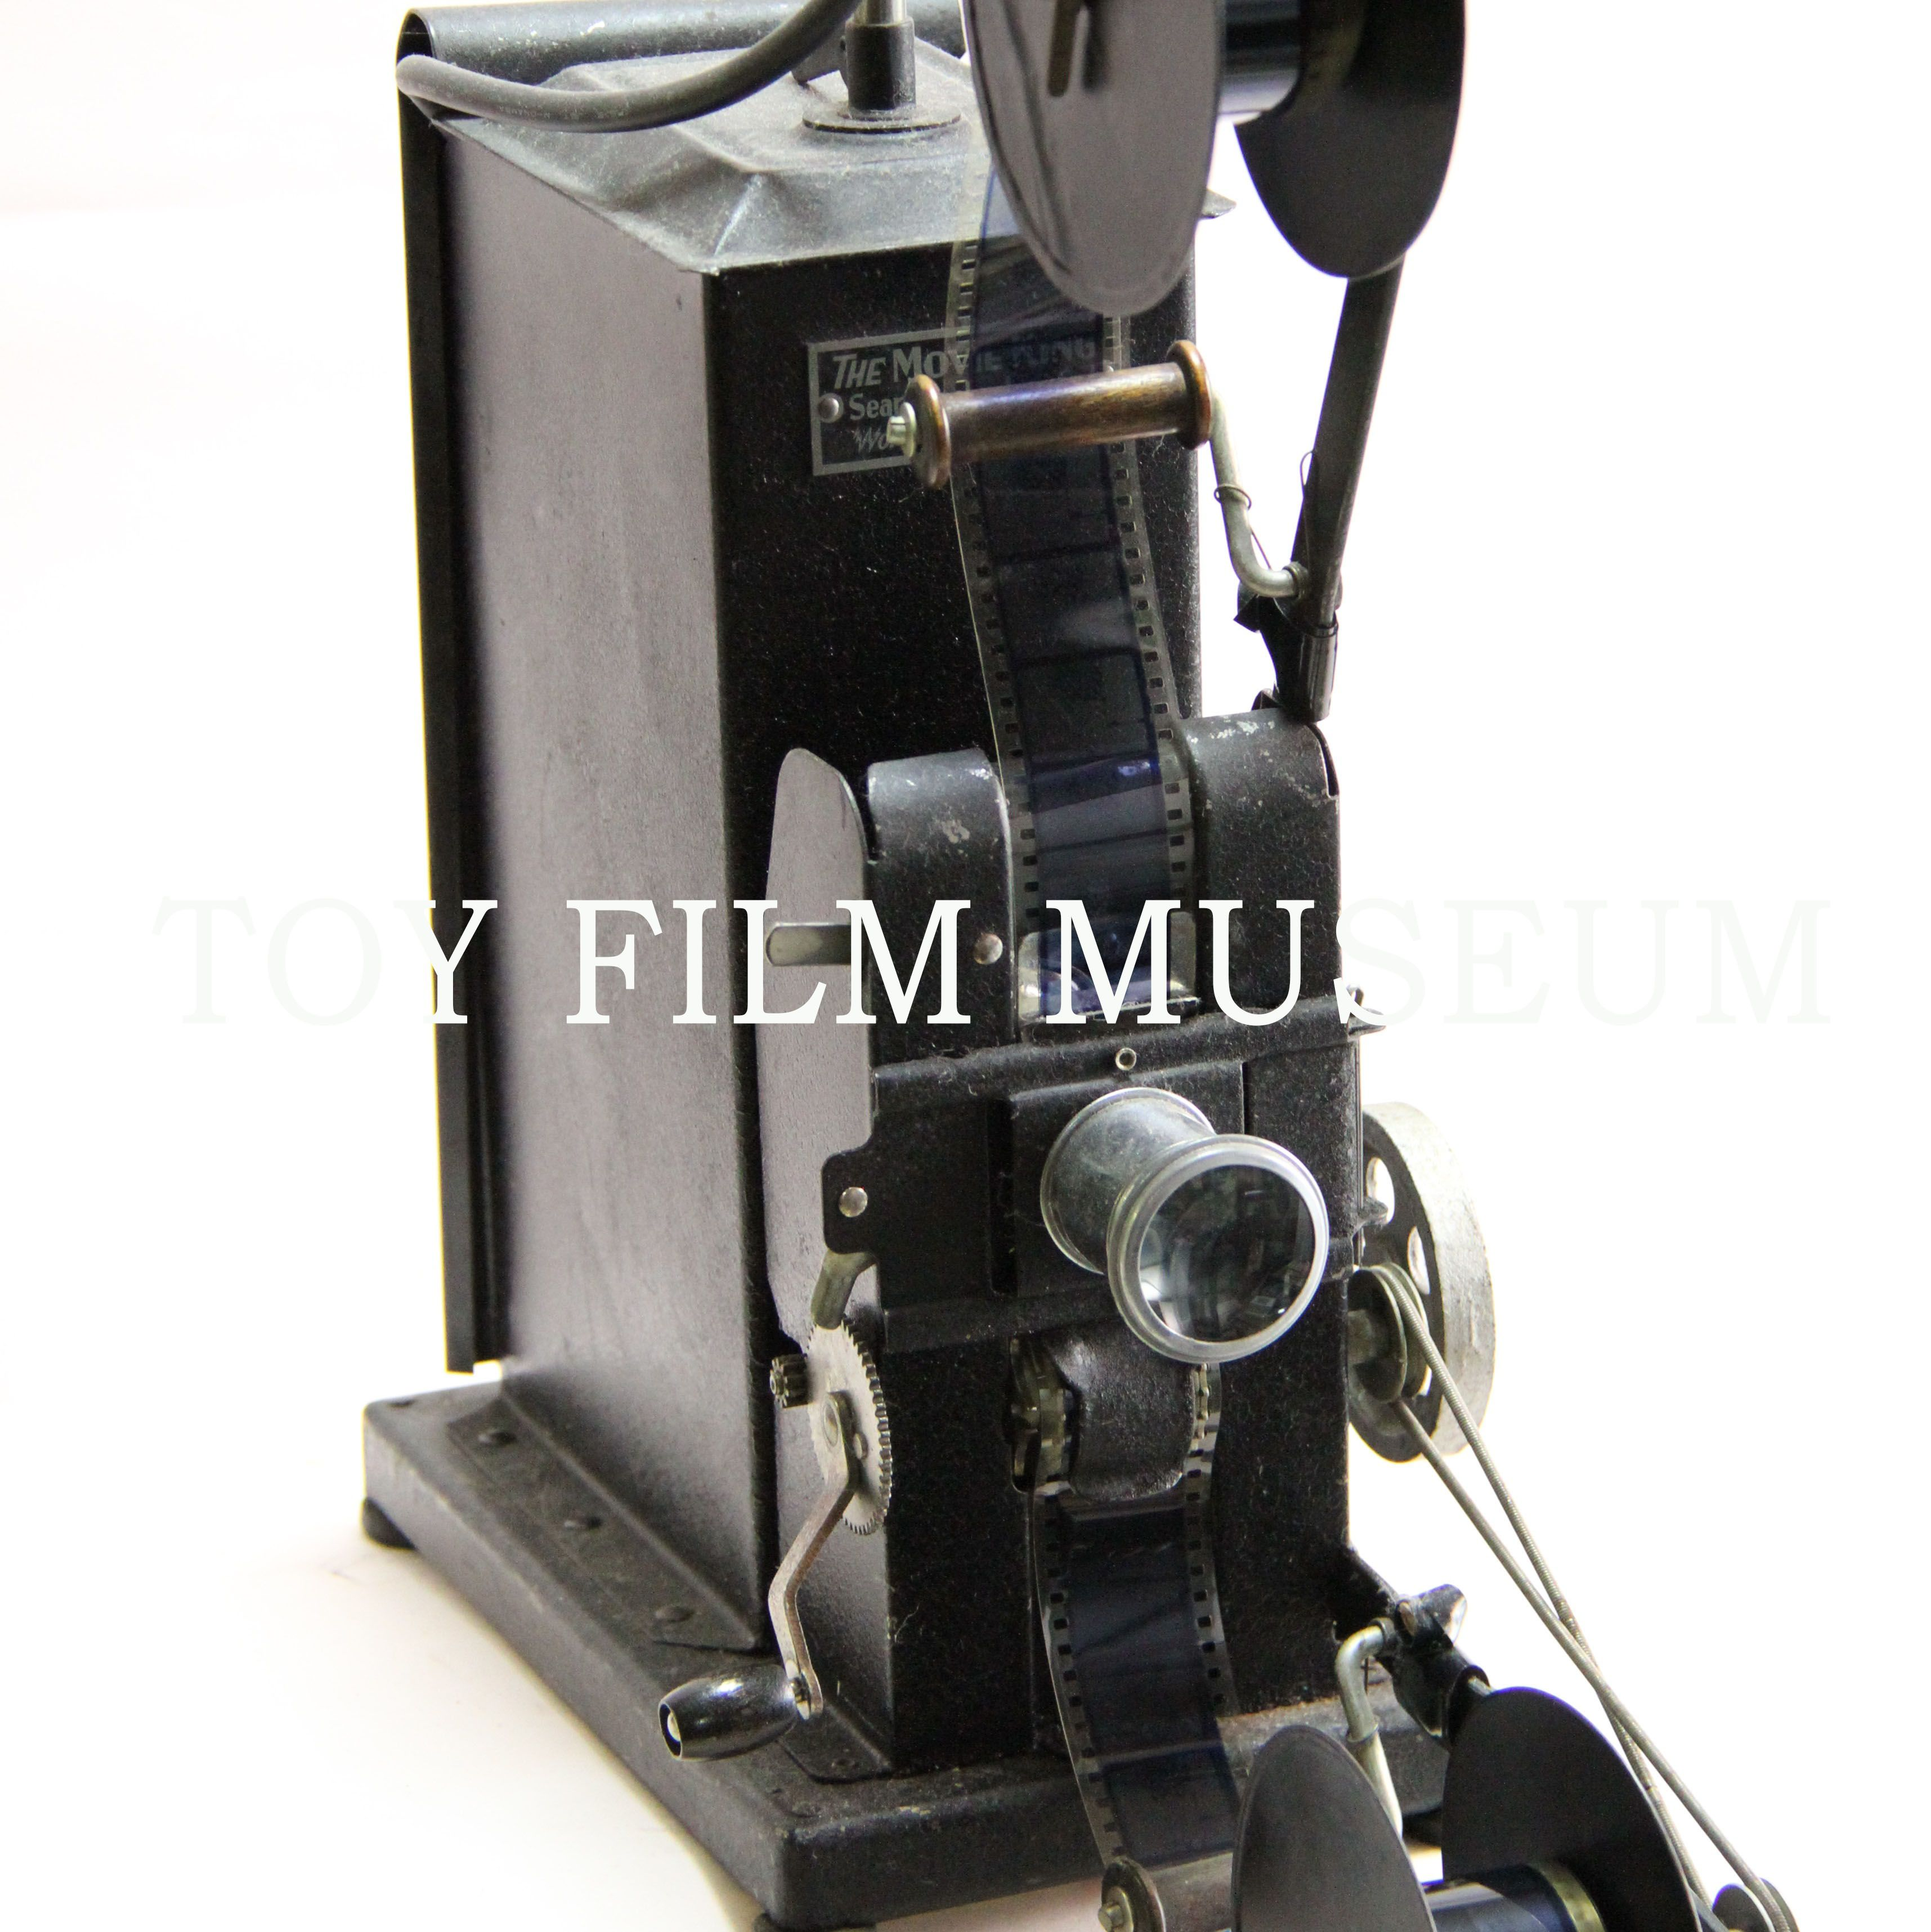 The Movie King 35mm Projector